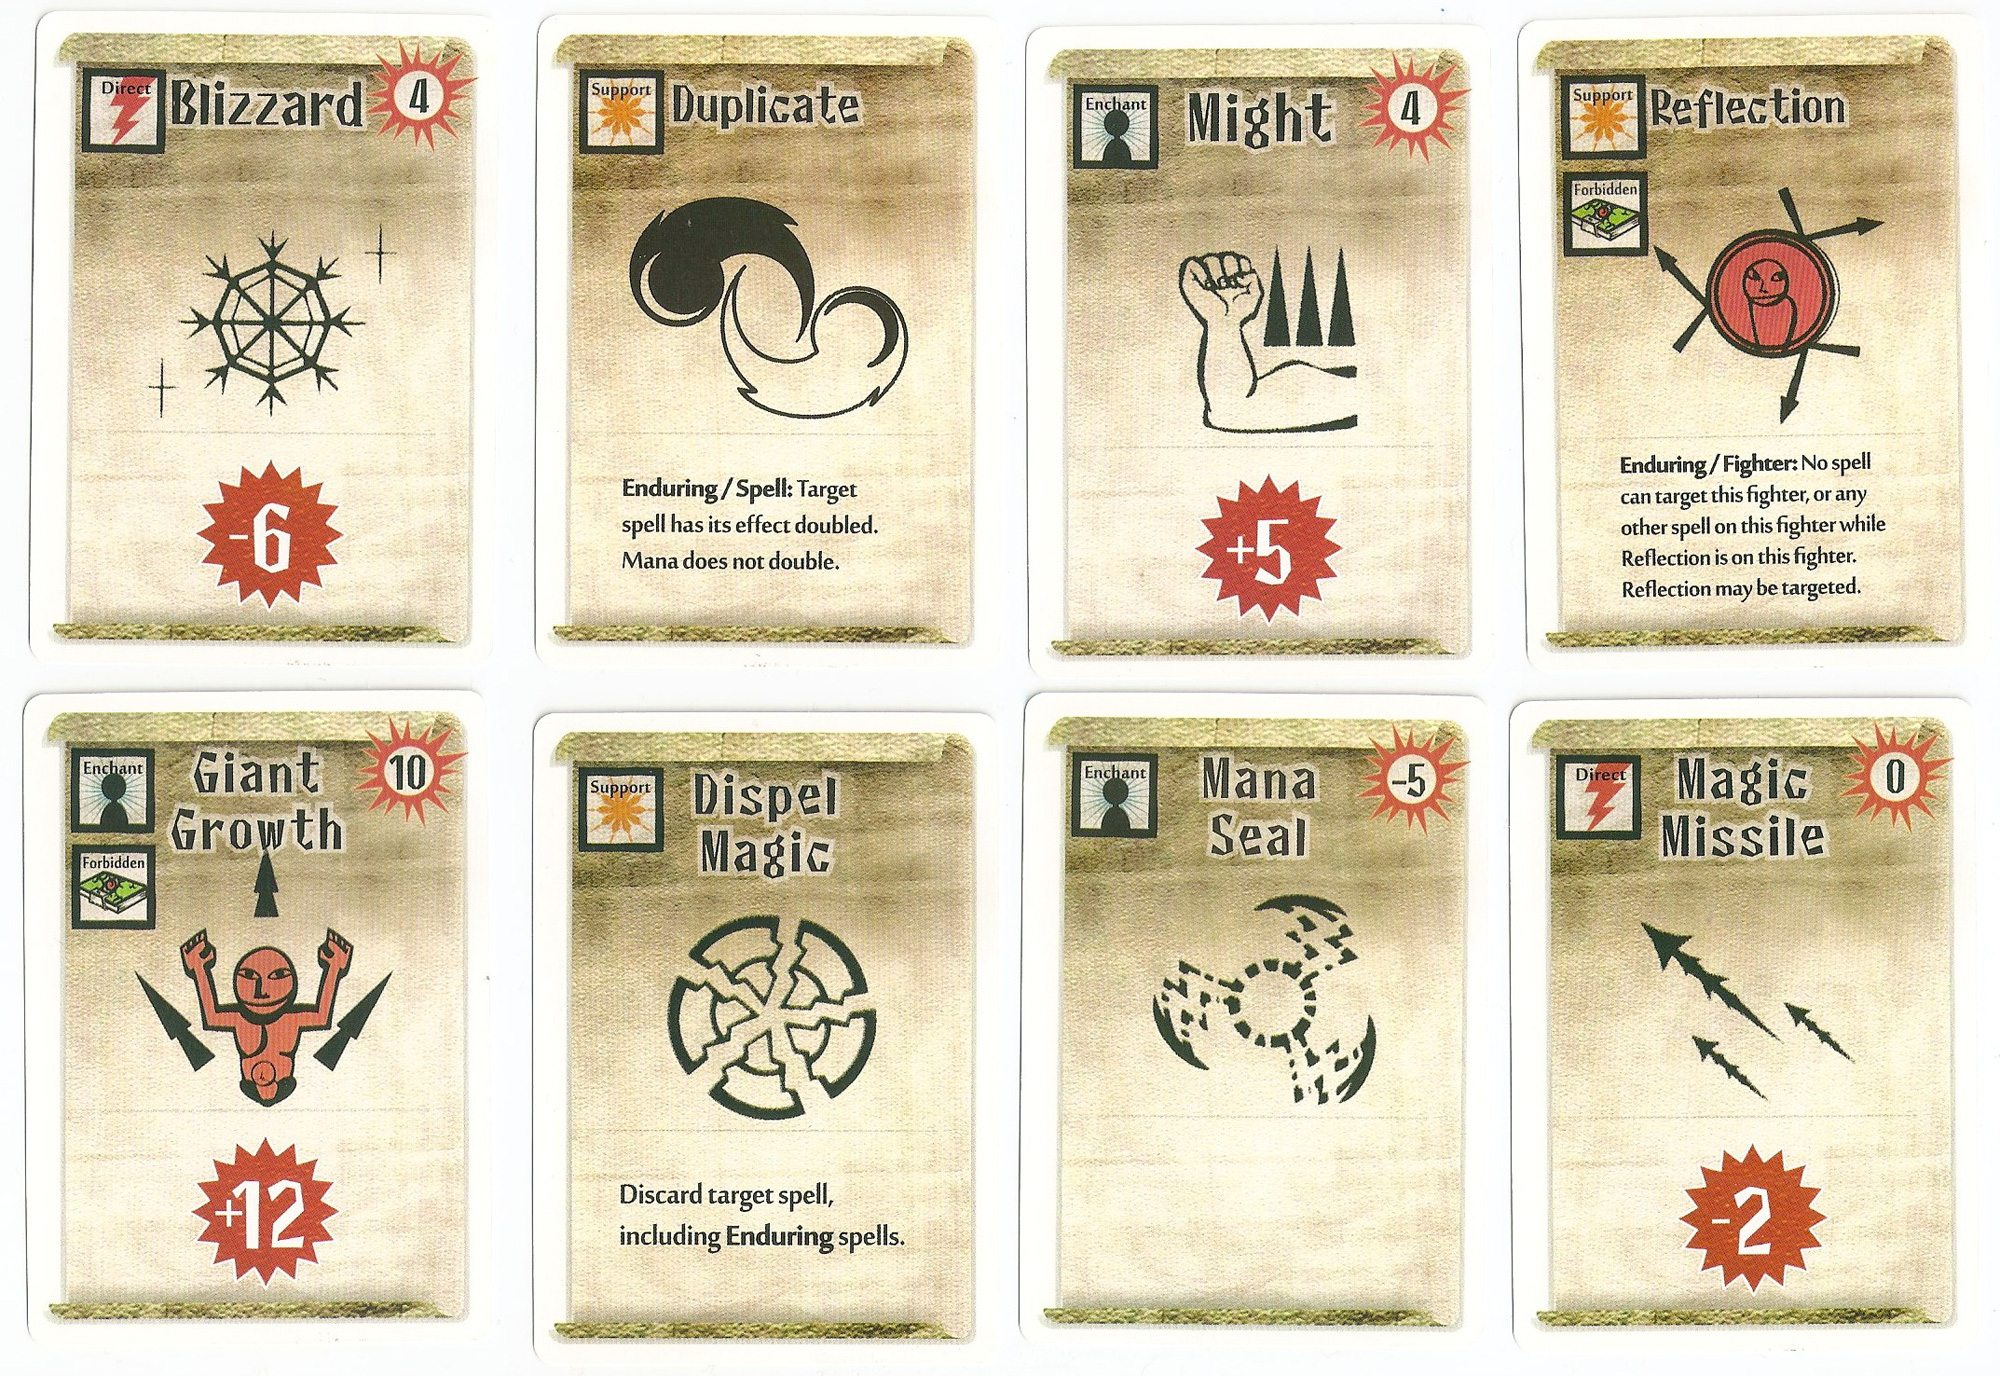 Cheaty Mages spells